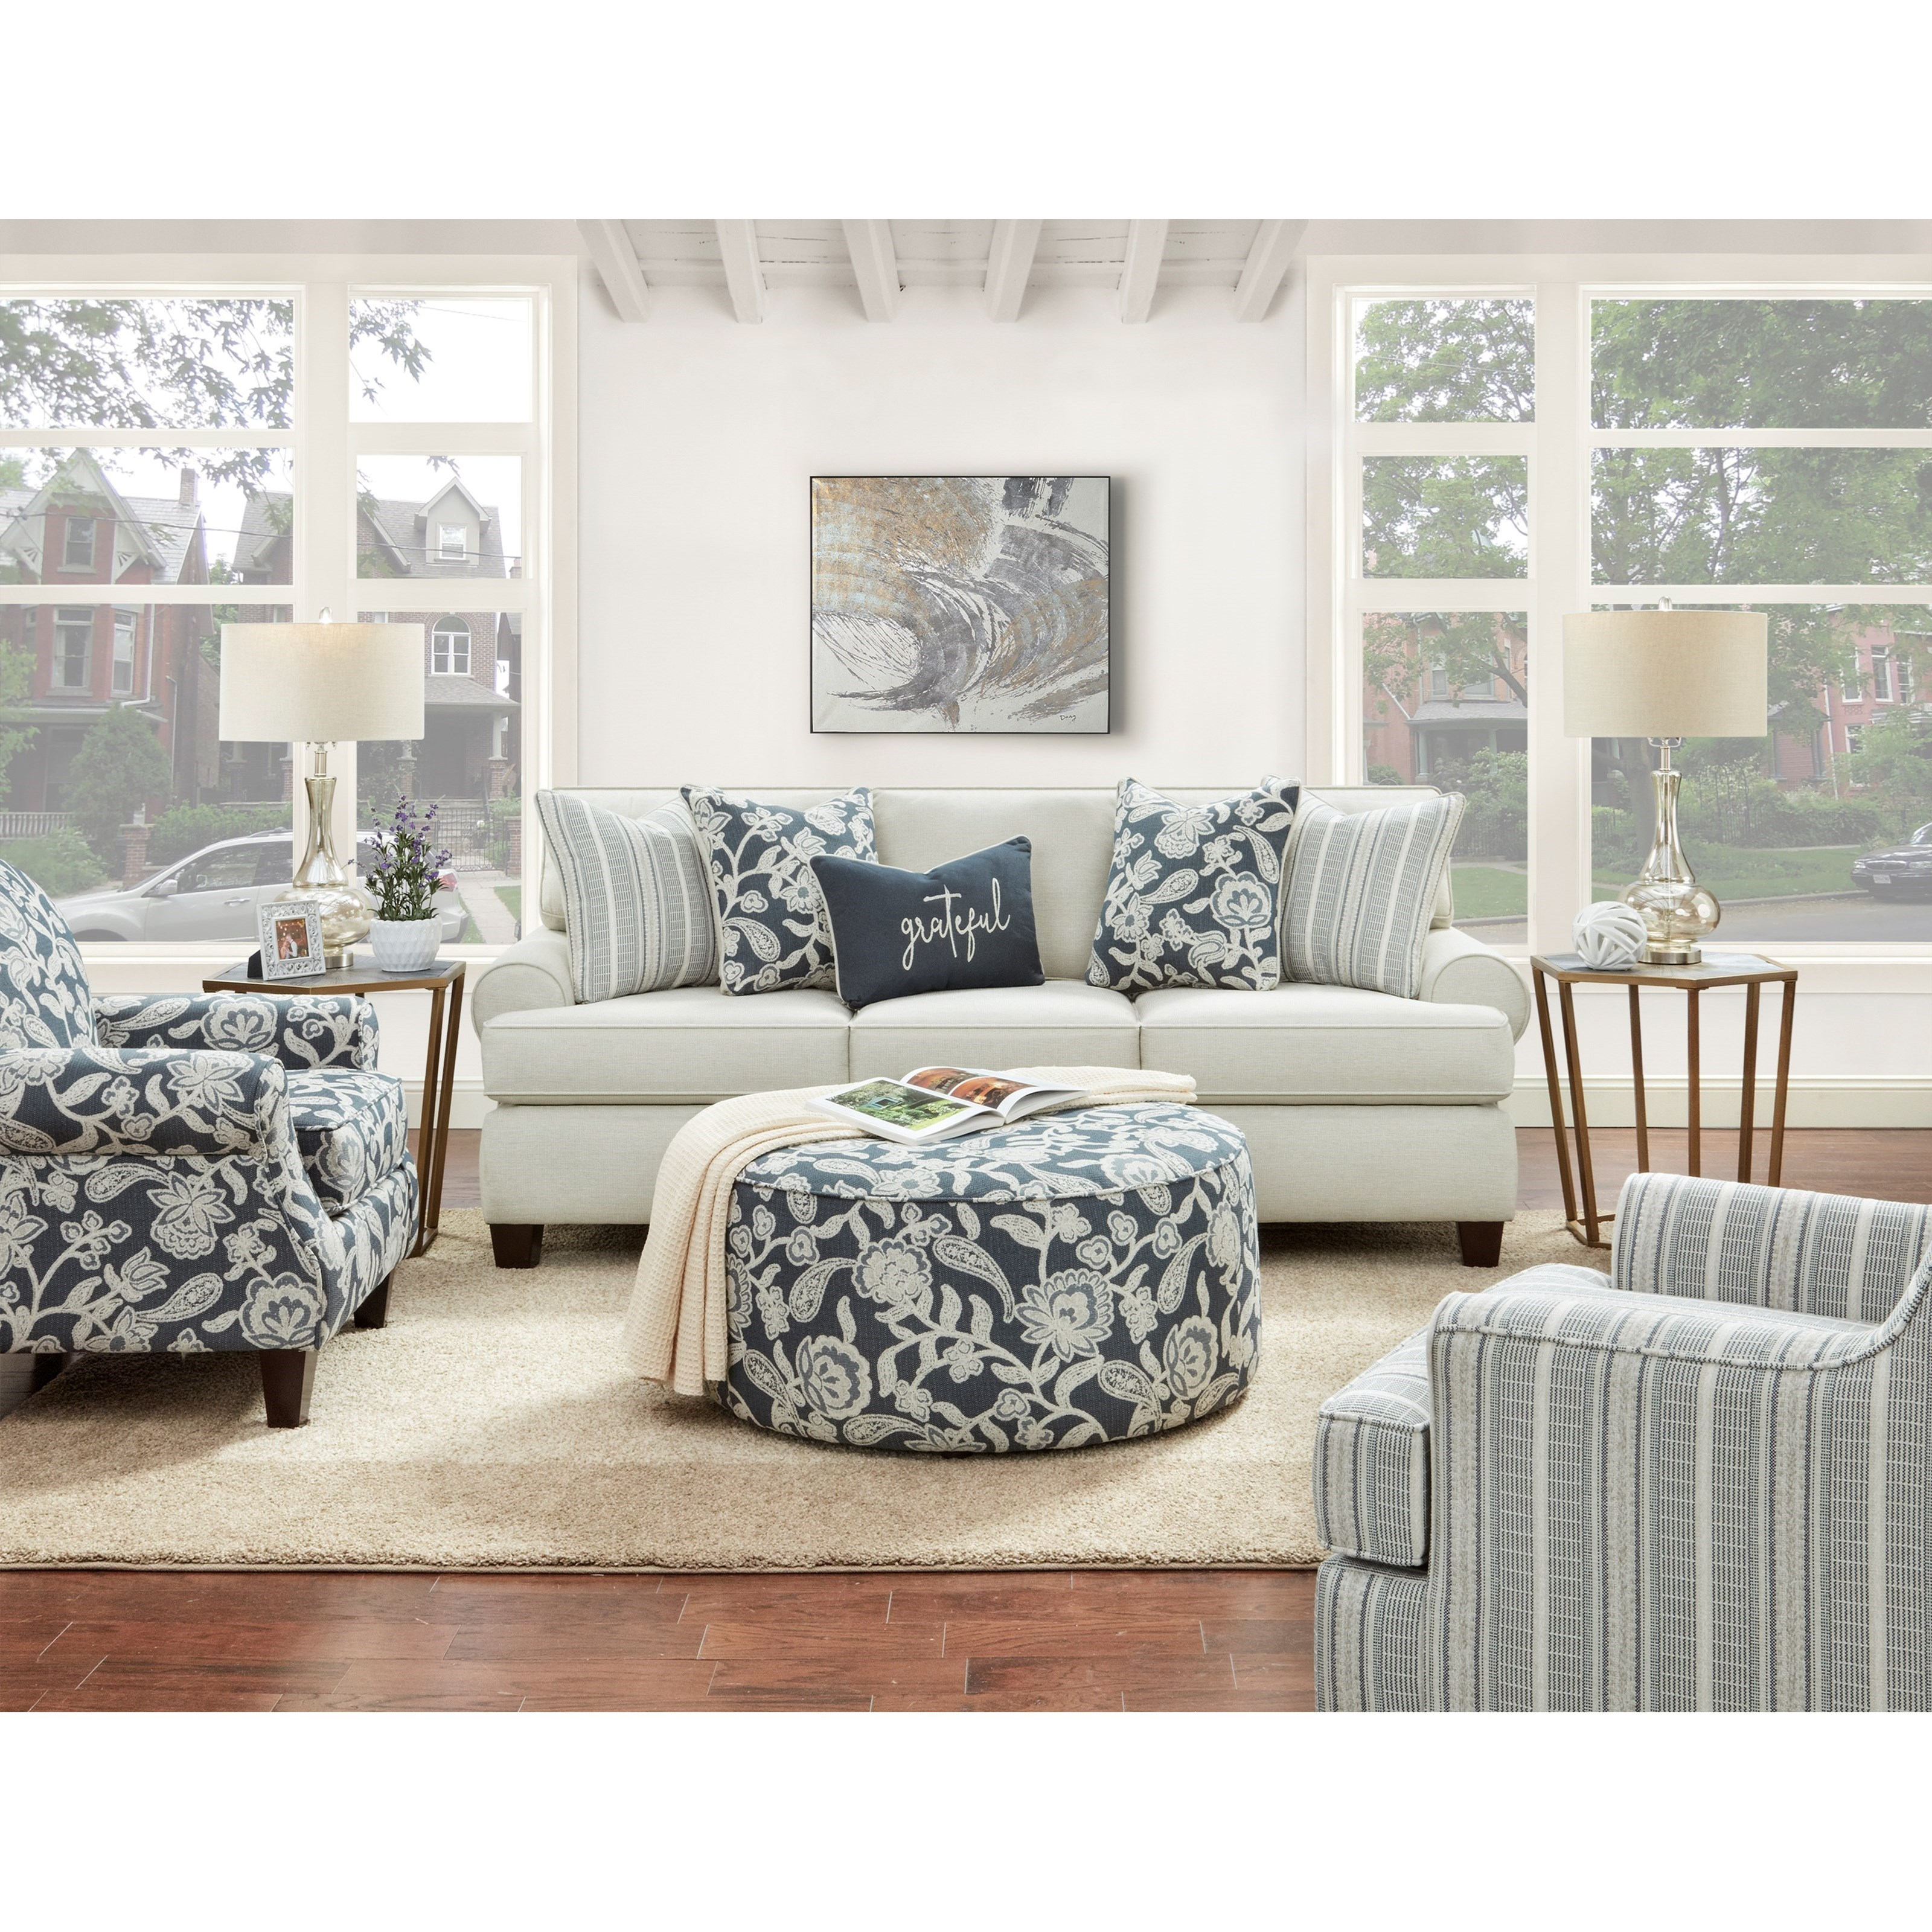 39-00 Living Room Group by Fusion Furniture at Wilcox Furniture